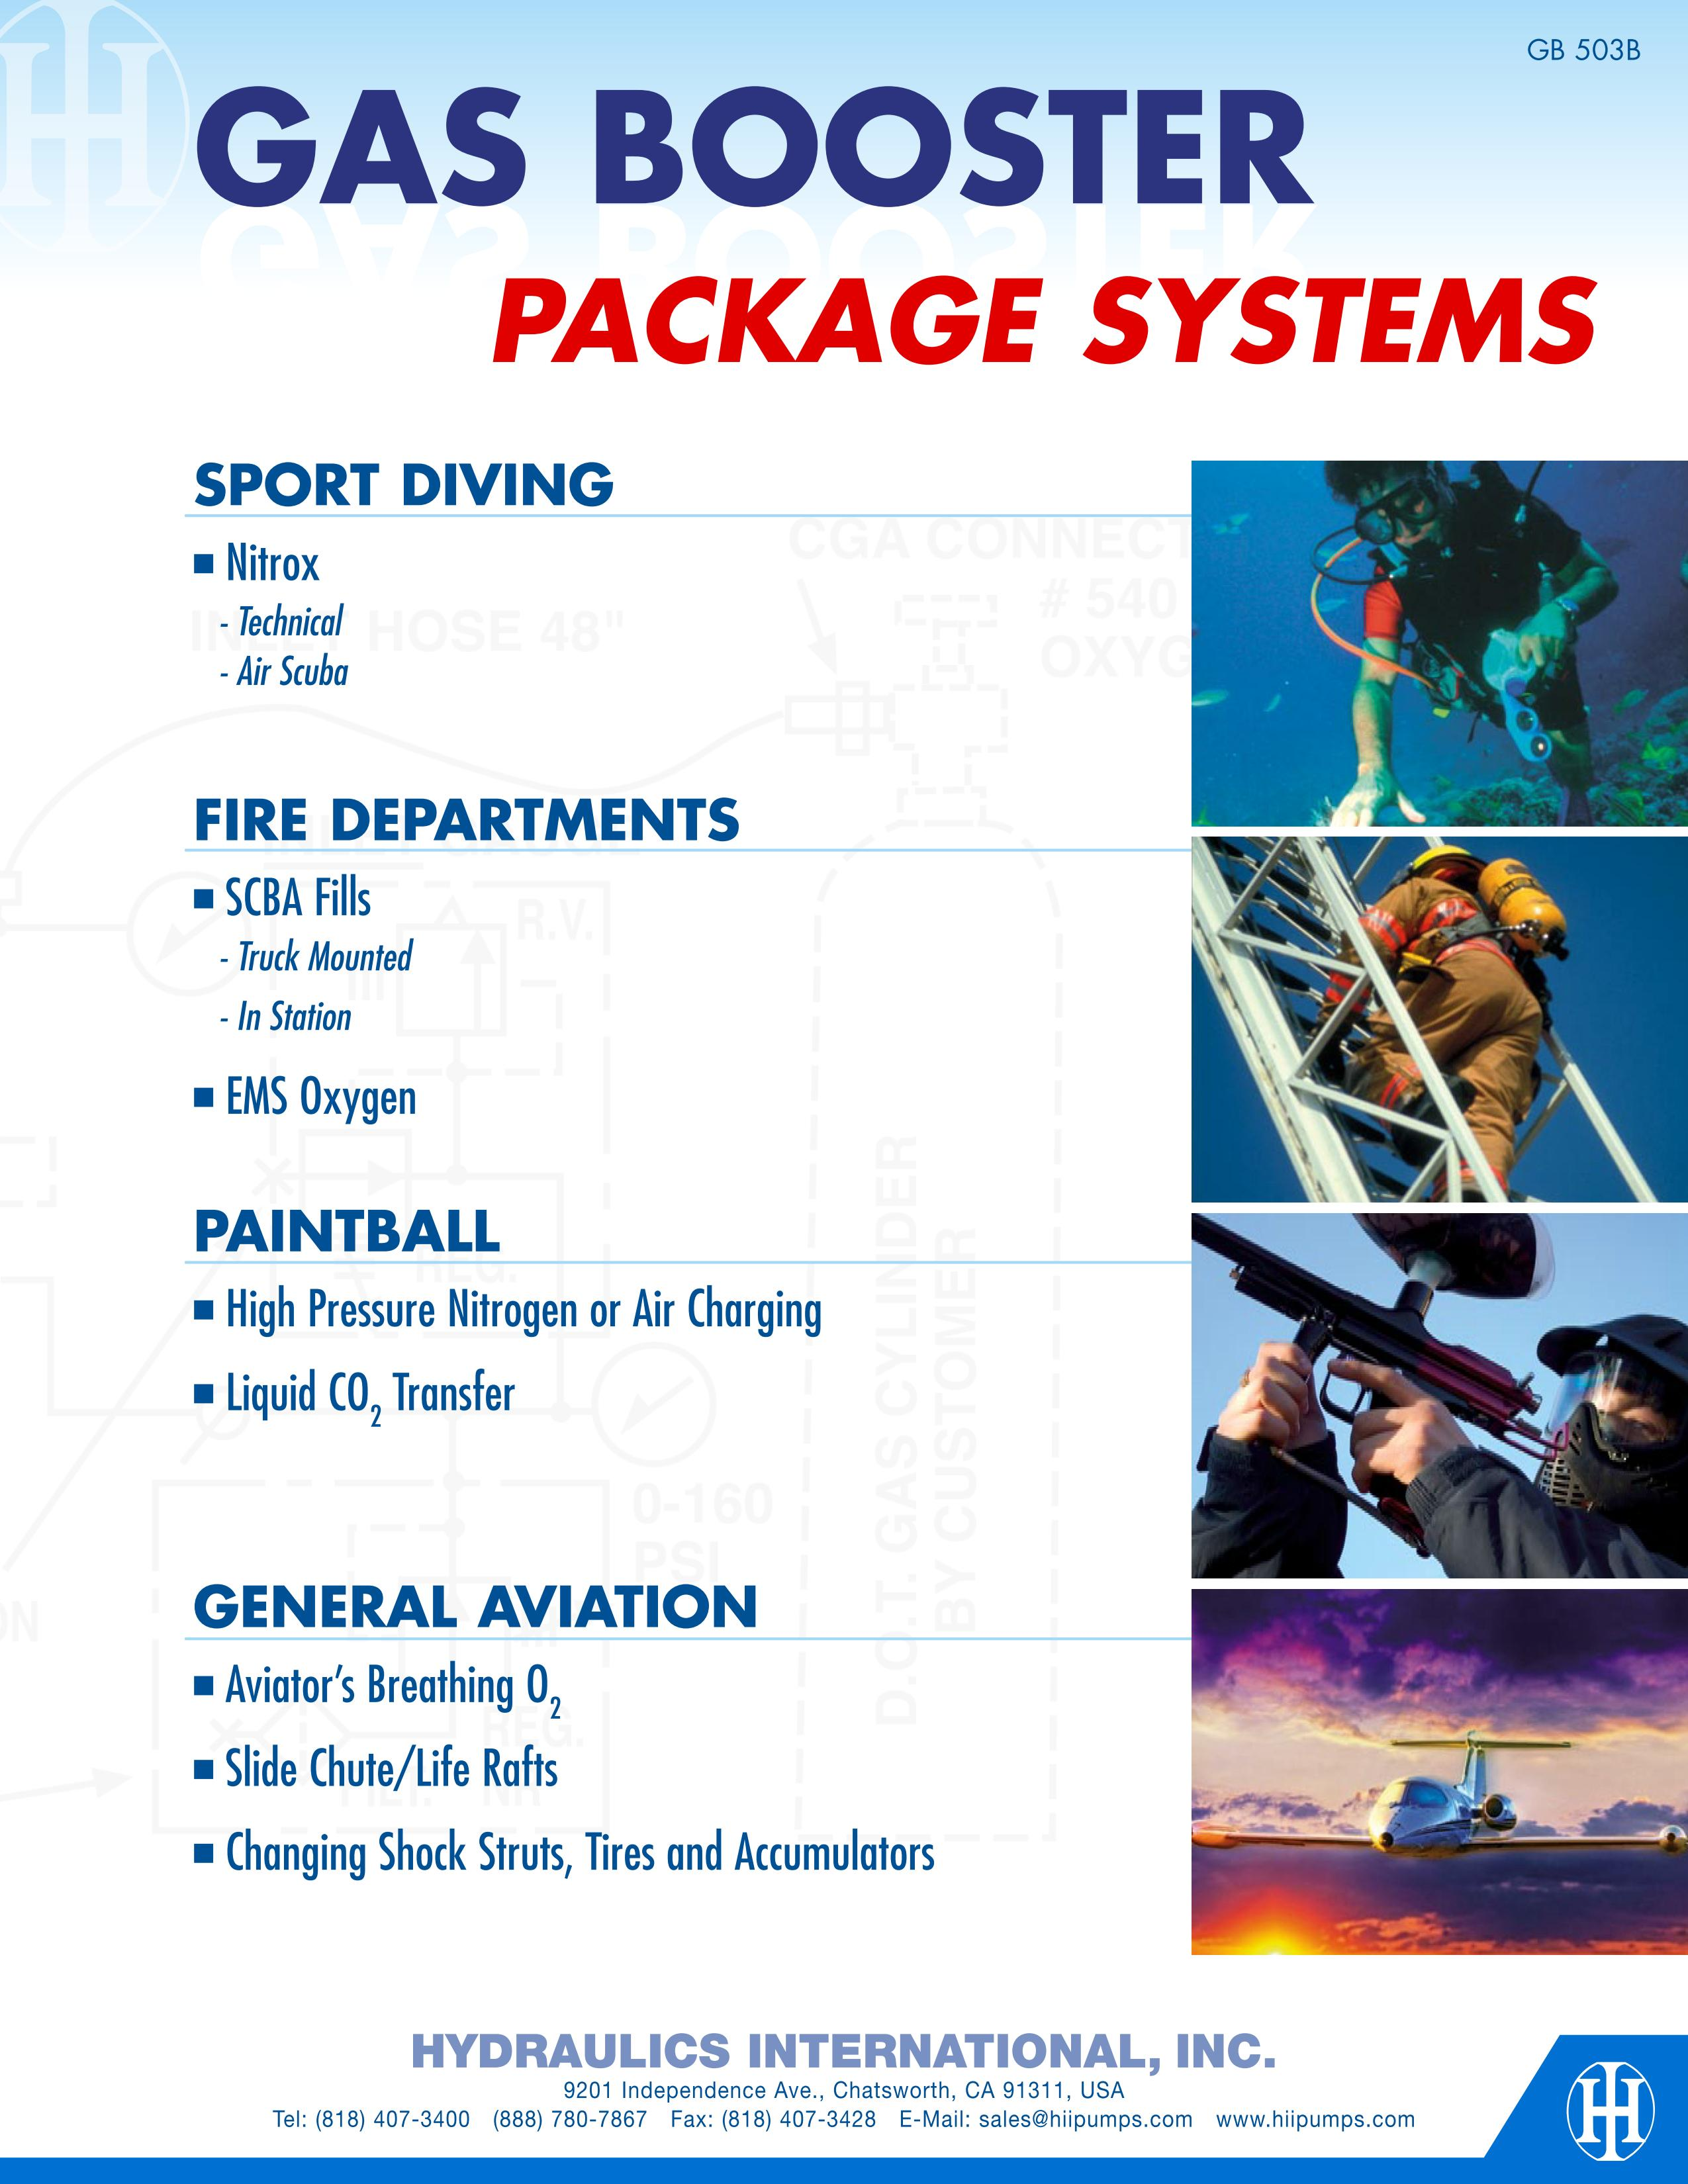 Gas booster package systems for sport diving, fire departments, paintball, general aviation